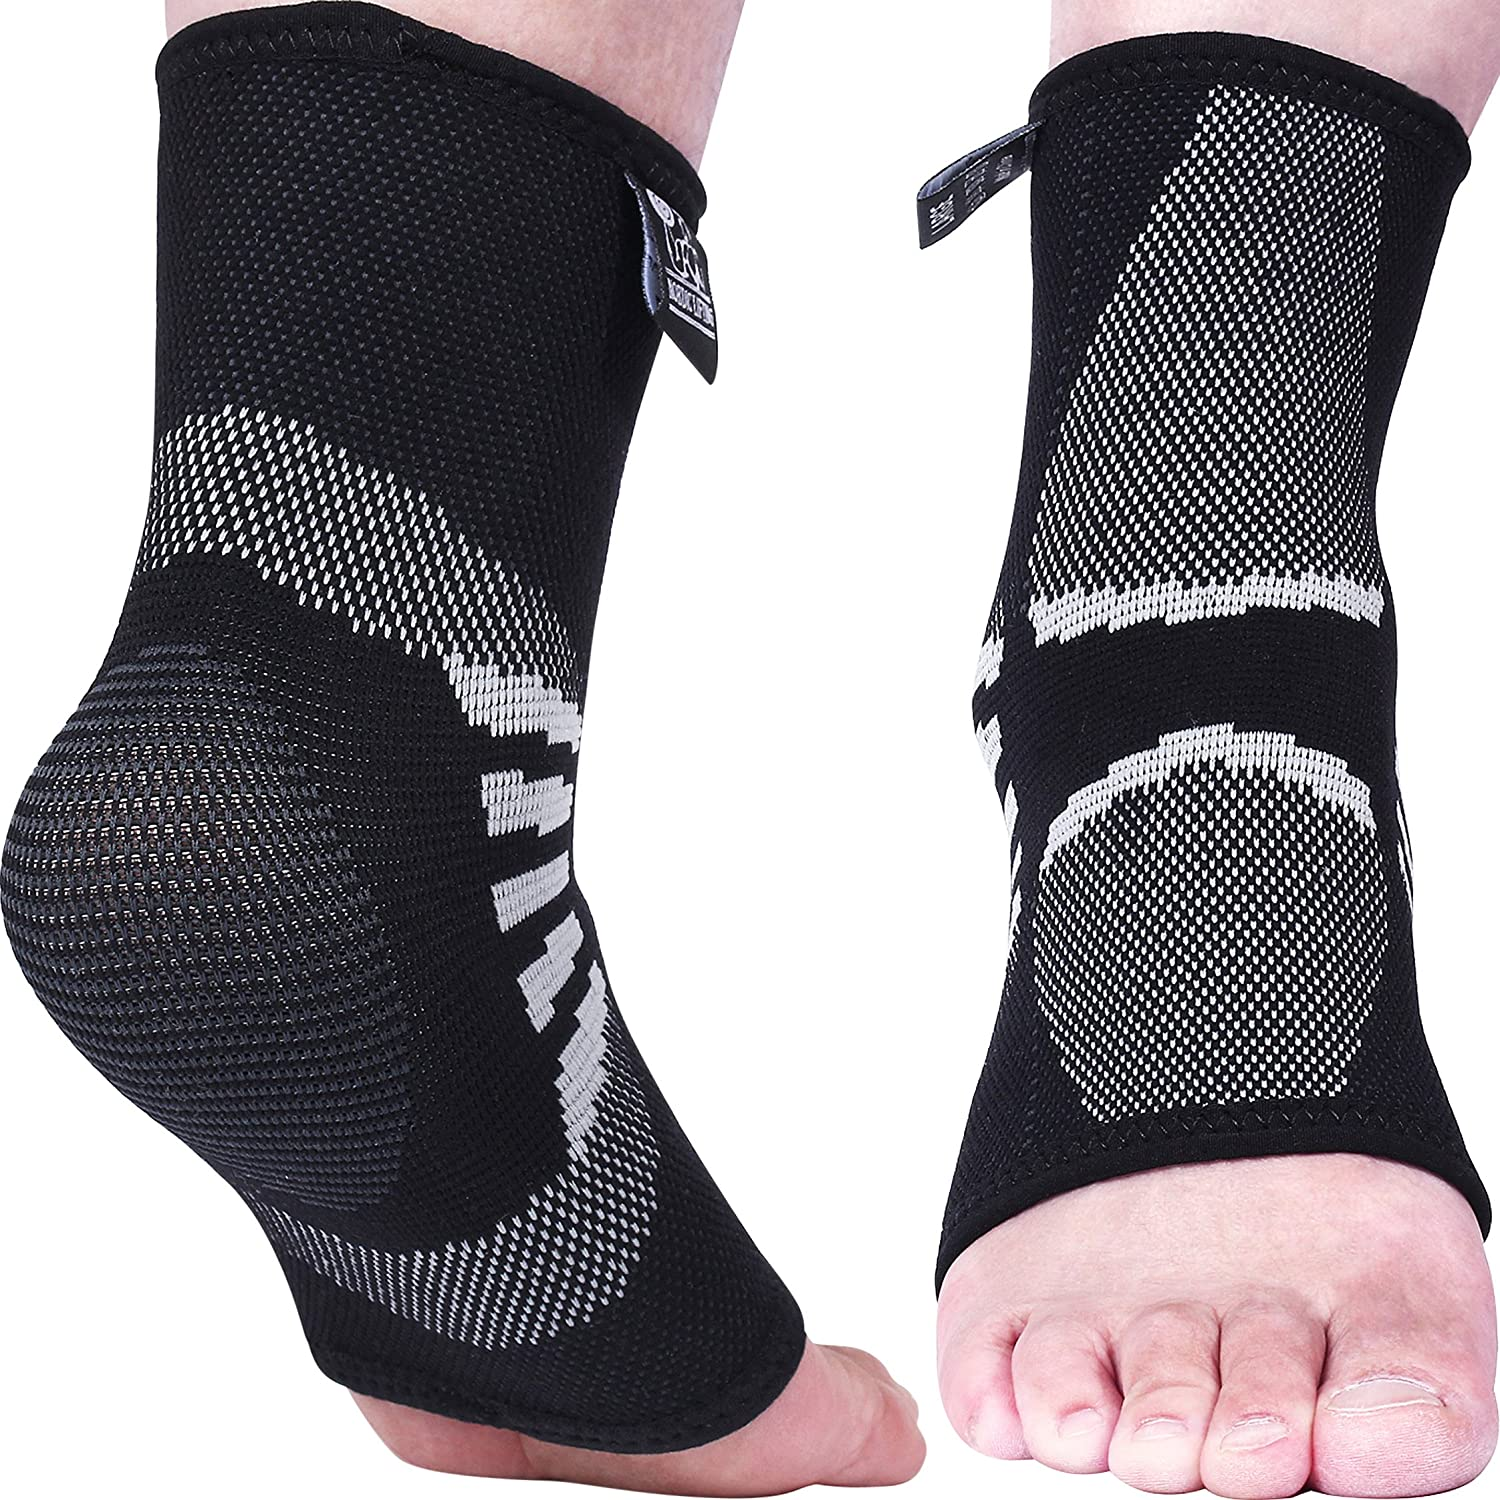 nordic ankle sleeve image